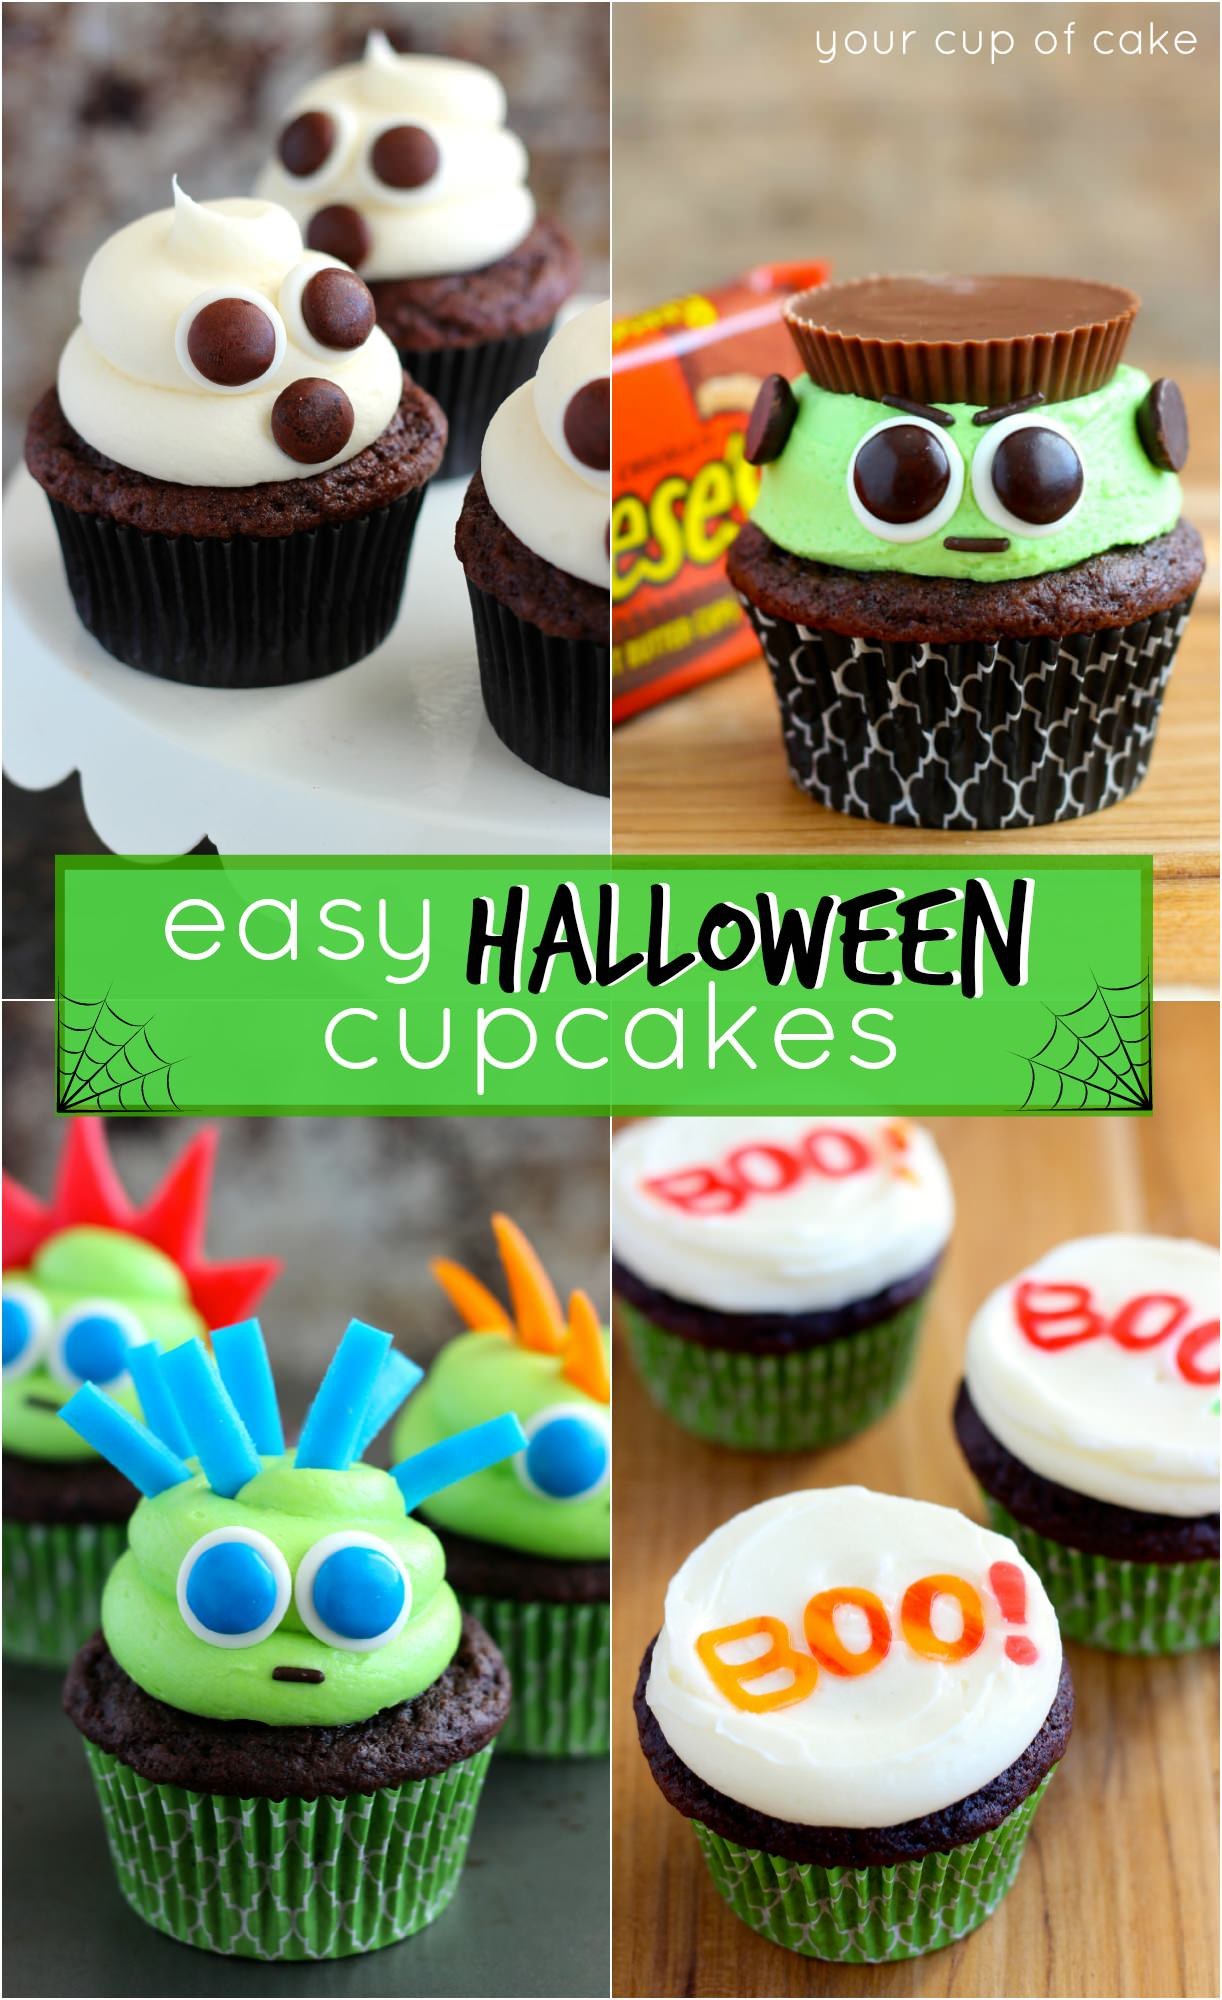 easy halloween cupcake ideas - Decorating Cupcakes For Halloween